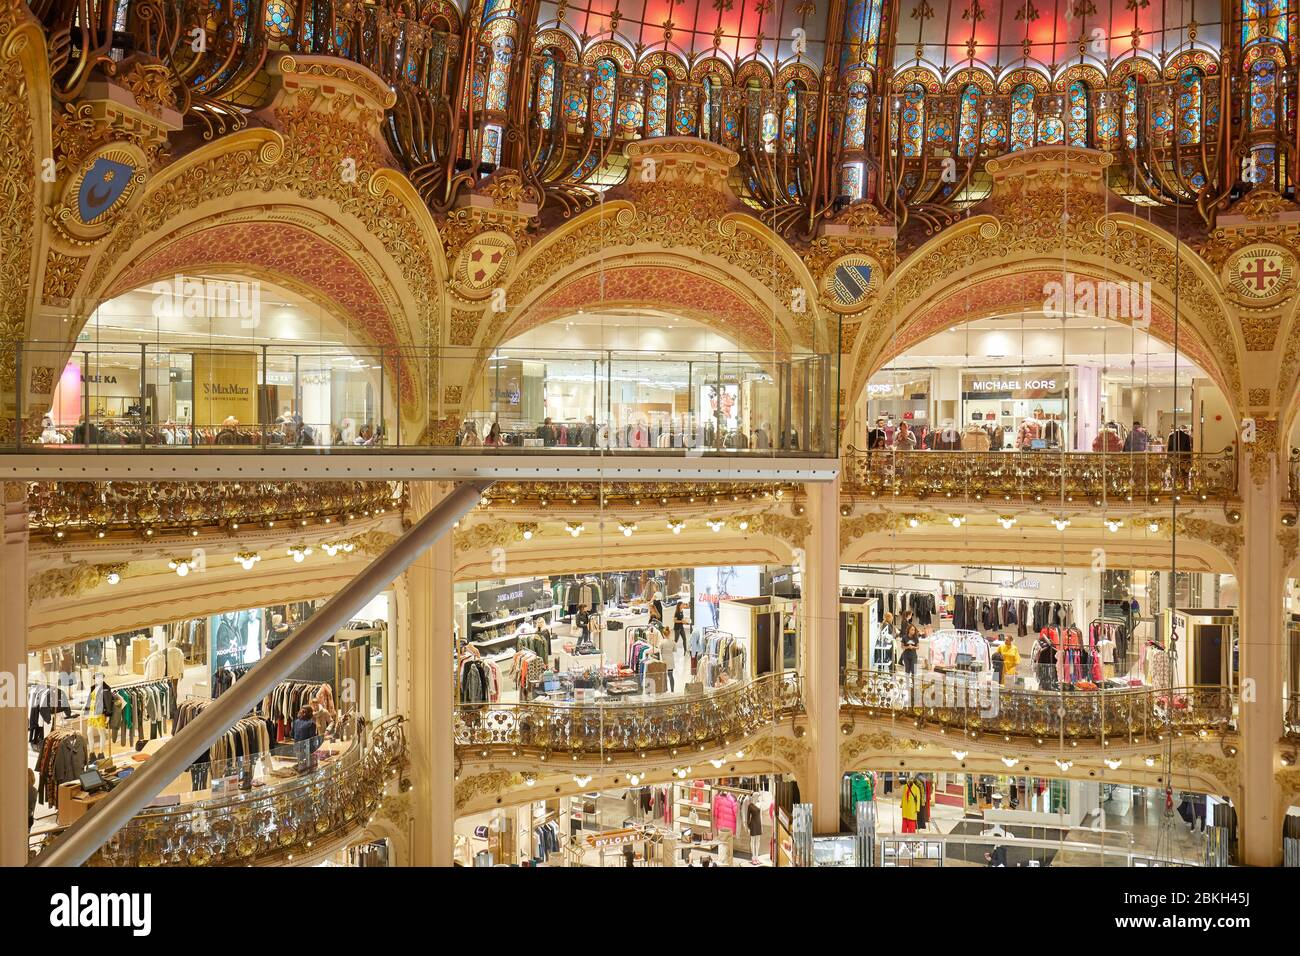 Galeries Lafayette High Resolution Stock Photography and Images ...